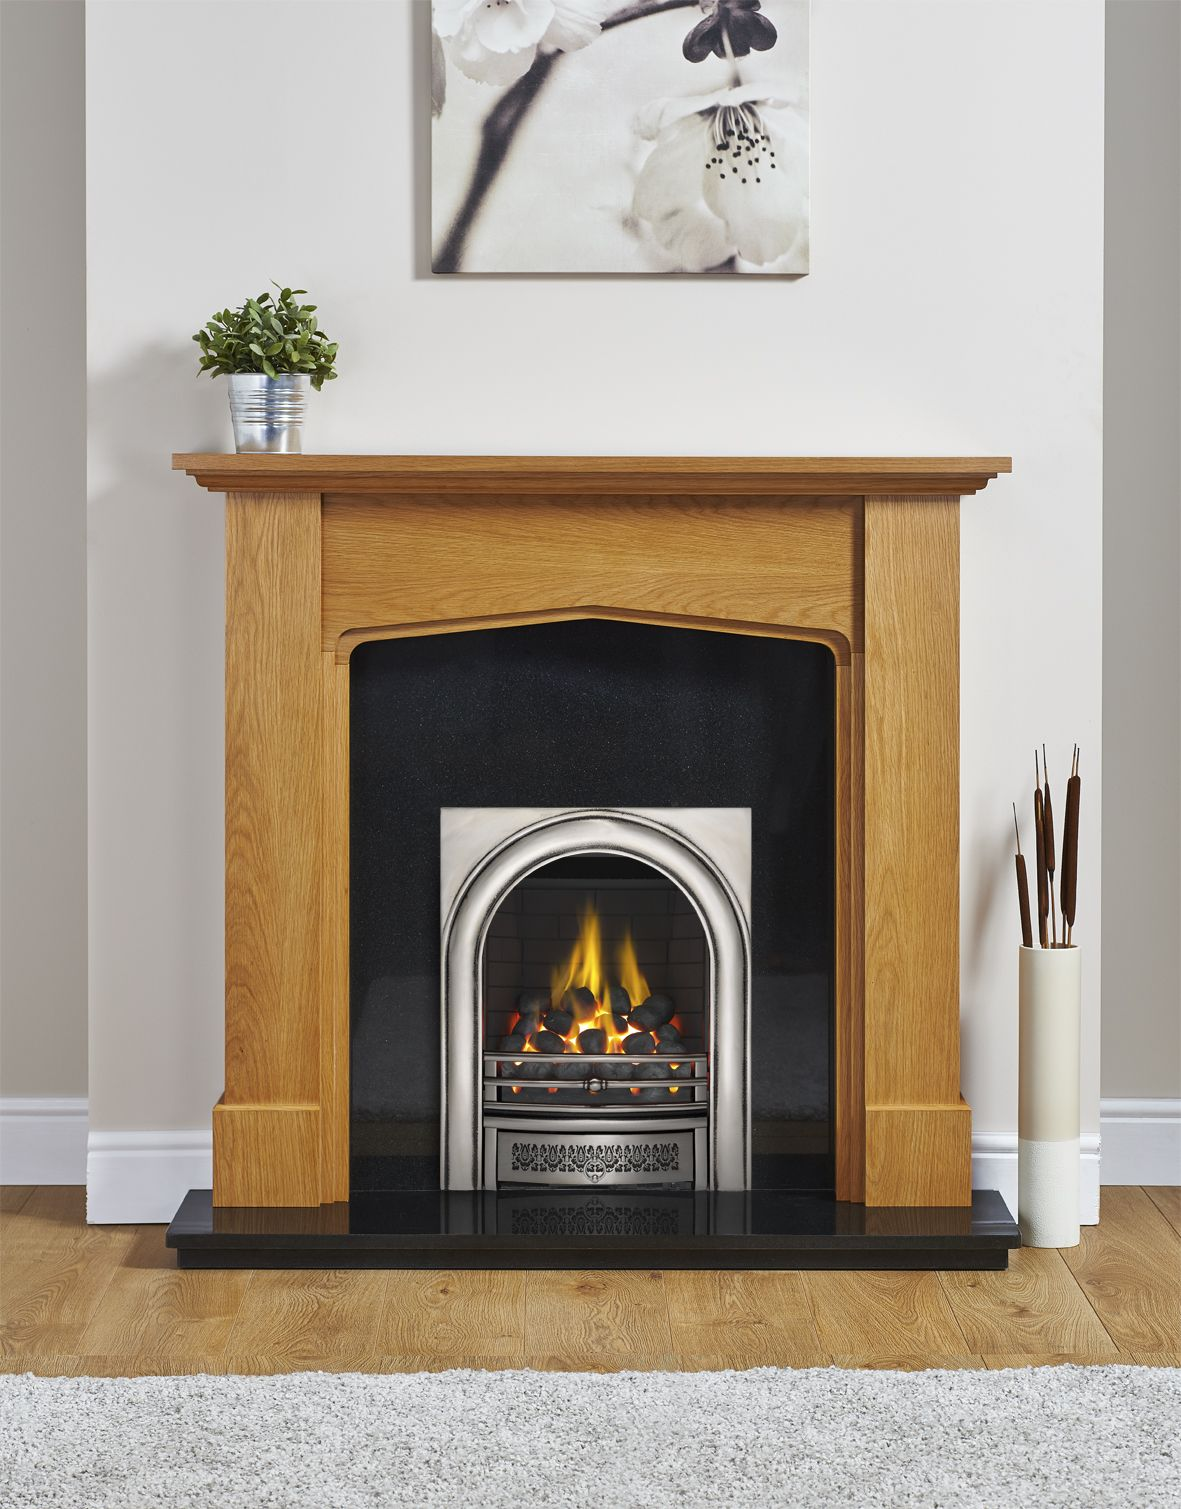 Inset Fireplace Elegant the Full Depth is One Of the Best Deep Radiant Inset Gas